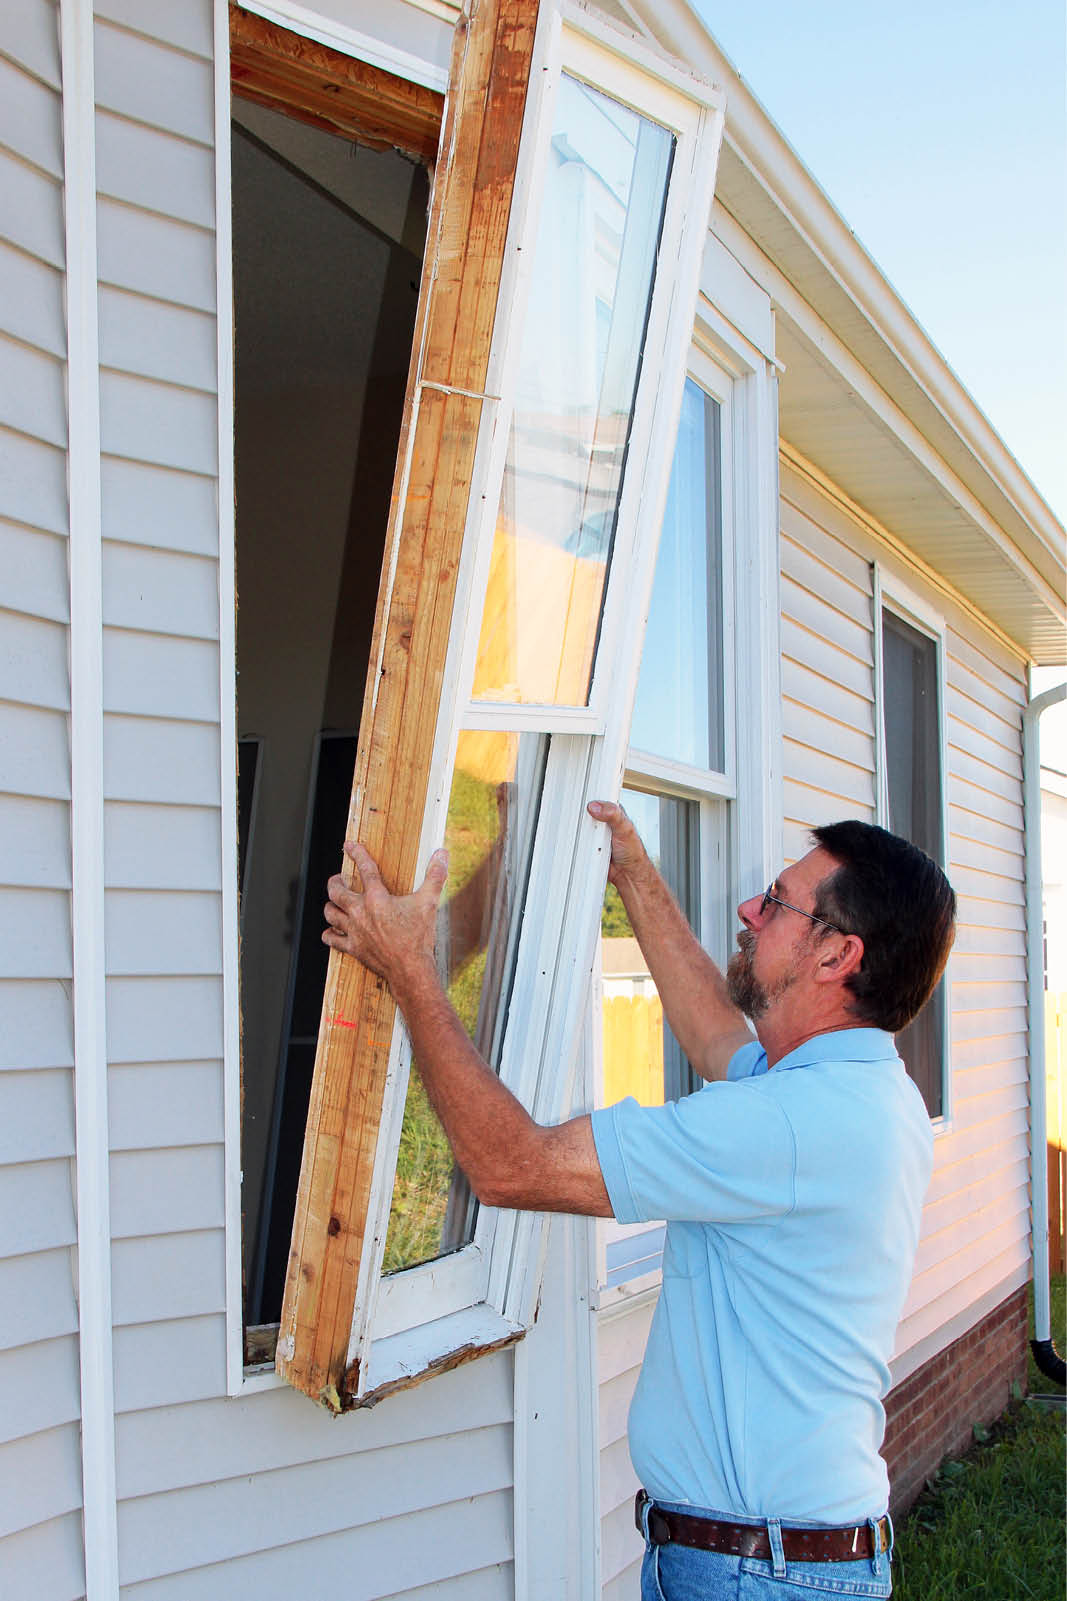 man installing window in home